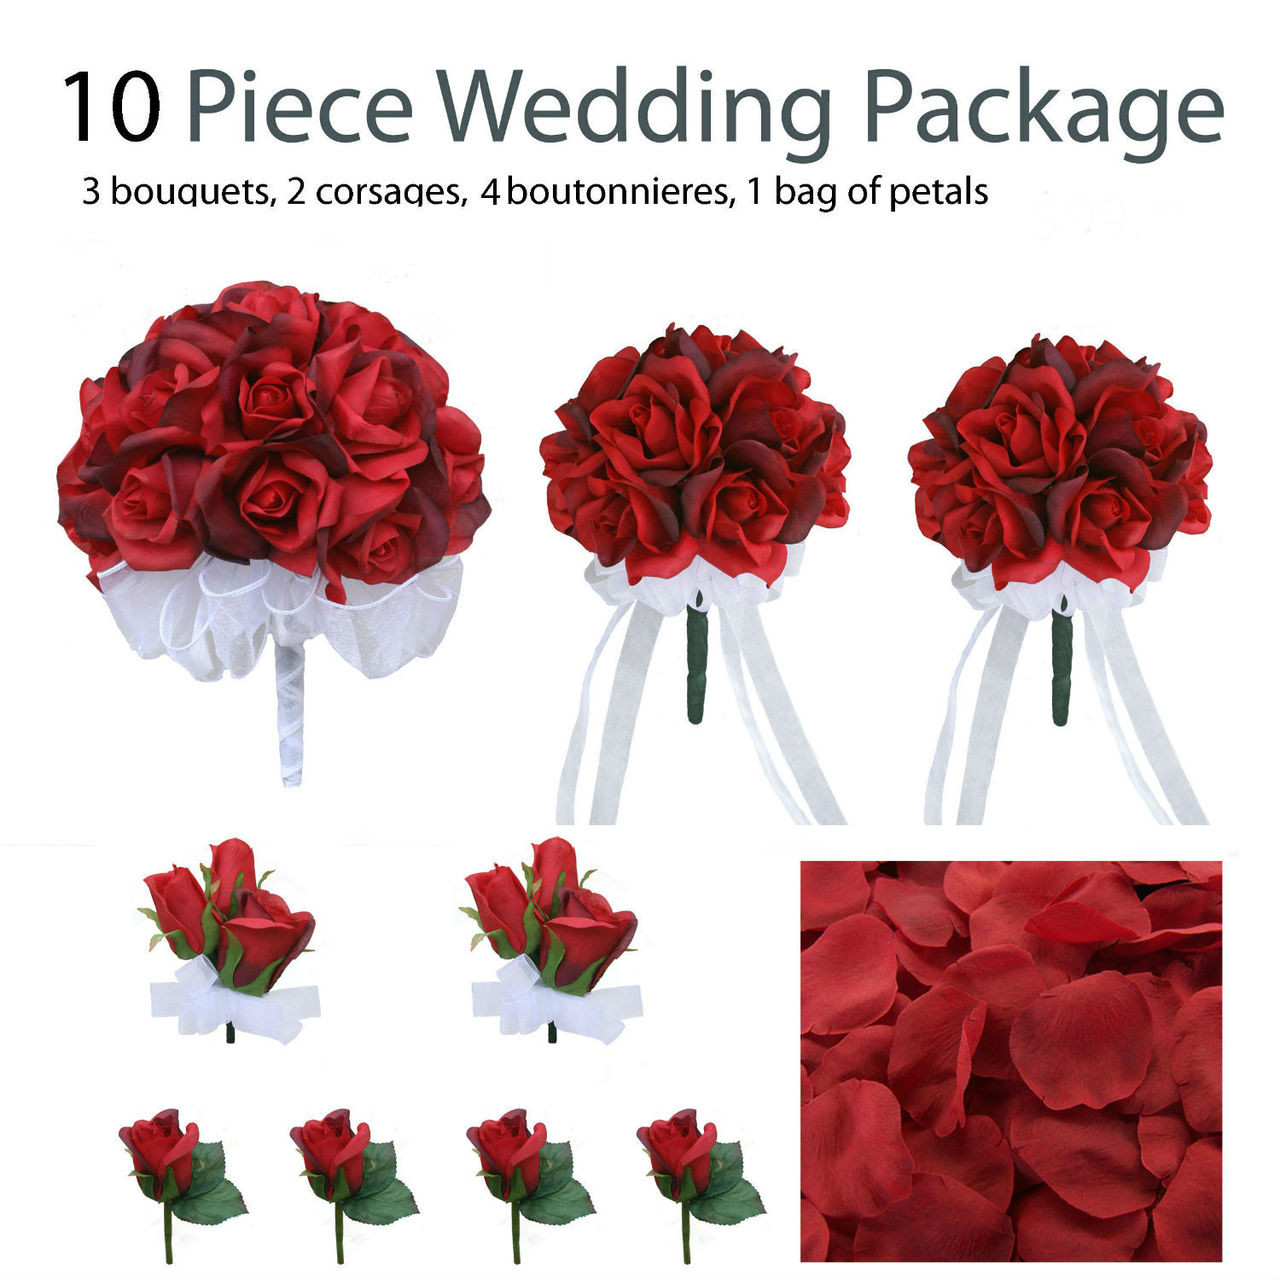 Red Rose Wedding Bouqet.Red Rose Wedding Flower Package Silk Wedding Flowers Cheap Bridal Bouquets Bridesmaid Bouquets Boutonniere Corsage Artificial Wedding